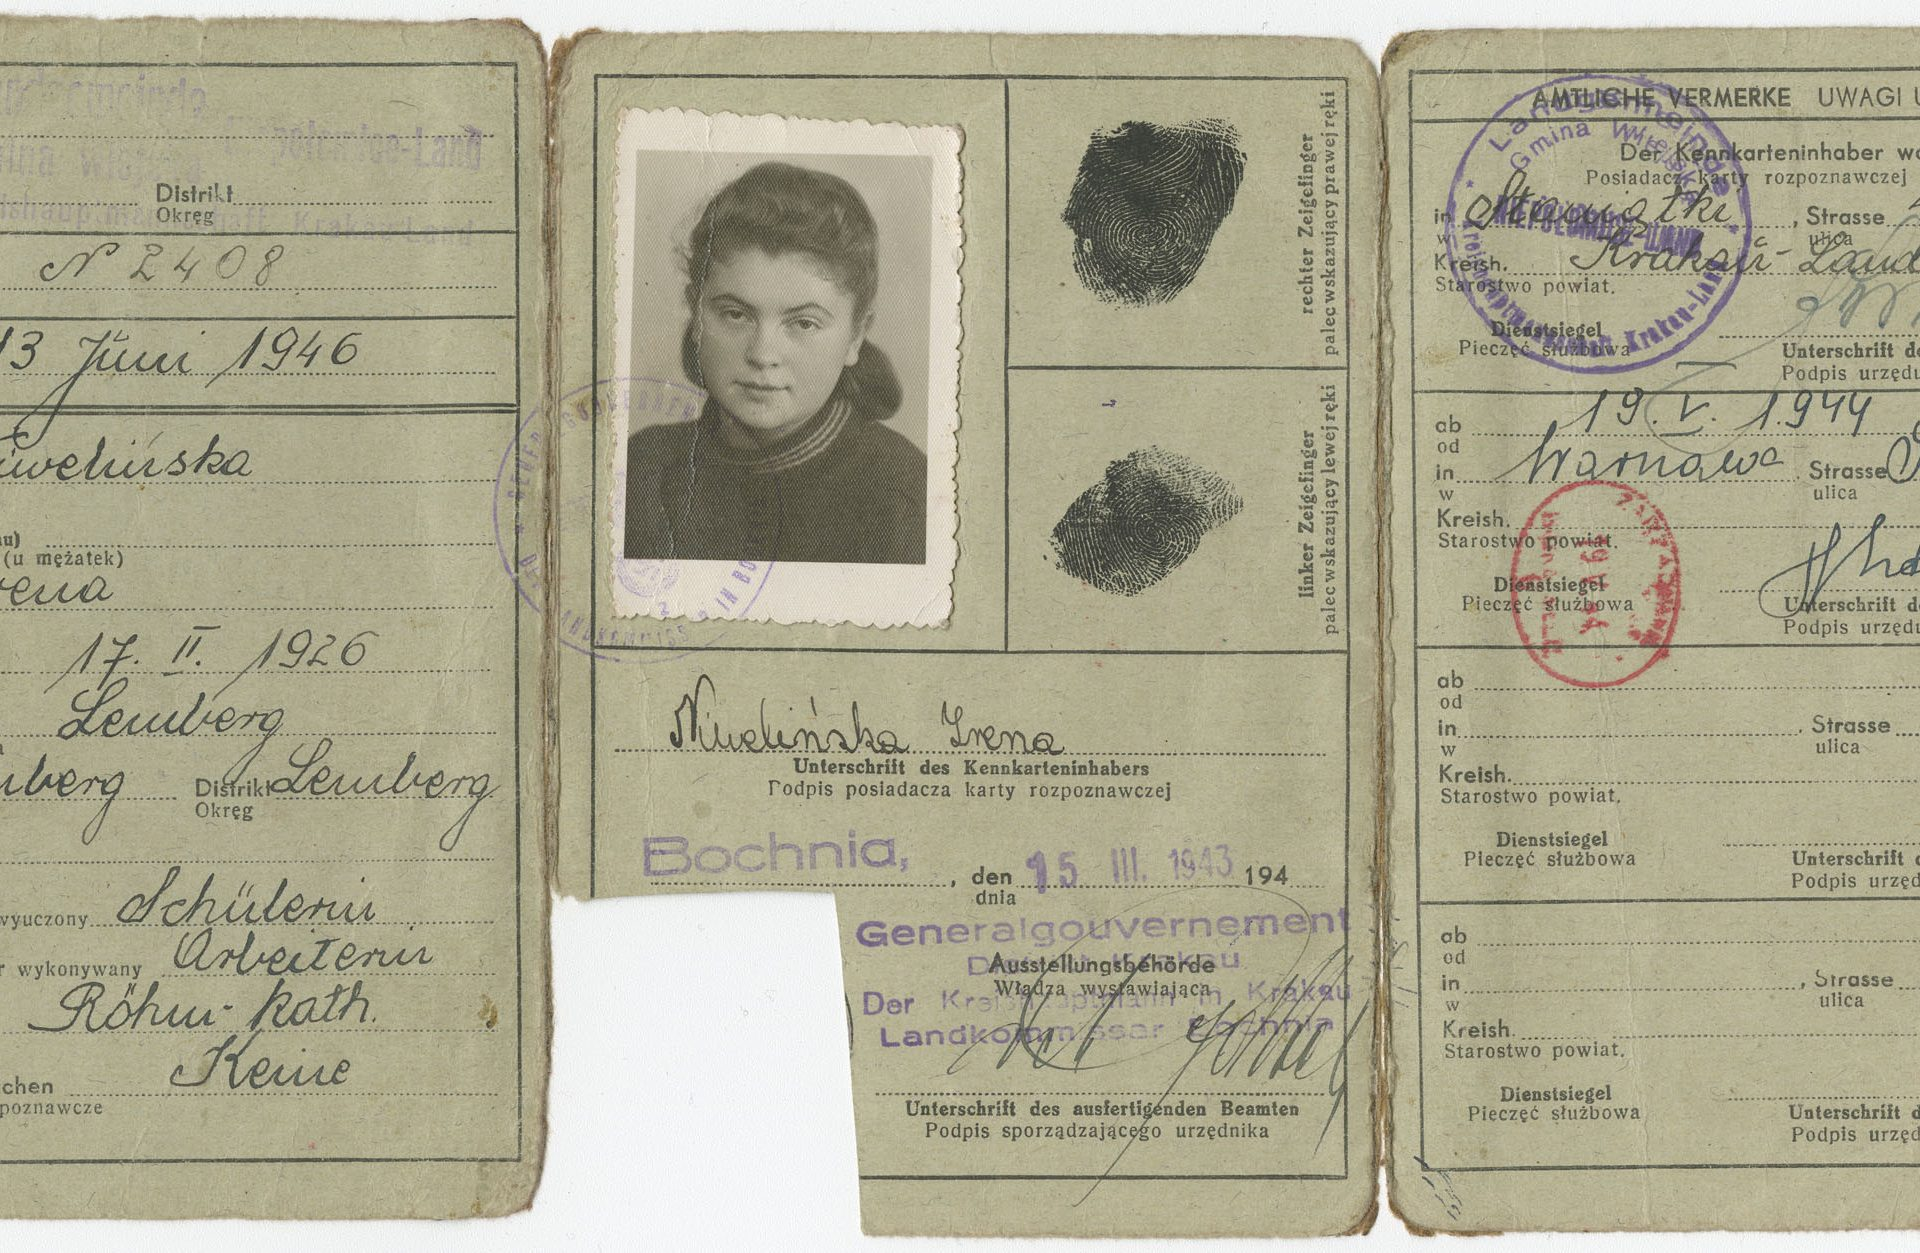 Identity card from the Polish General Government belonging to Irena Niwelinska, born in 1926 in Lvov. Dina Sheres used the card to assume a false identity after escaping from the Lvov ghetto.